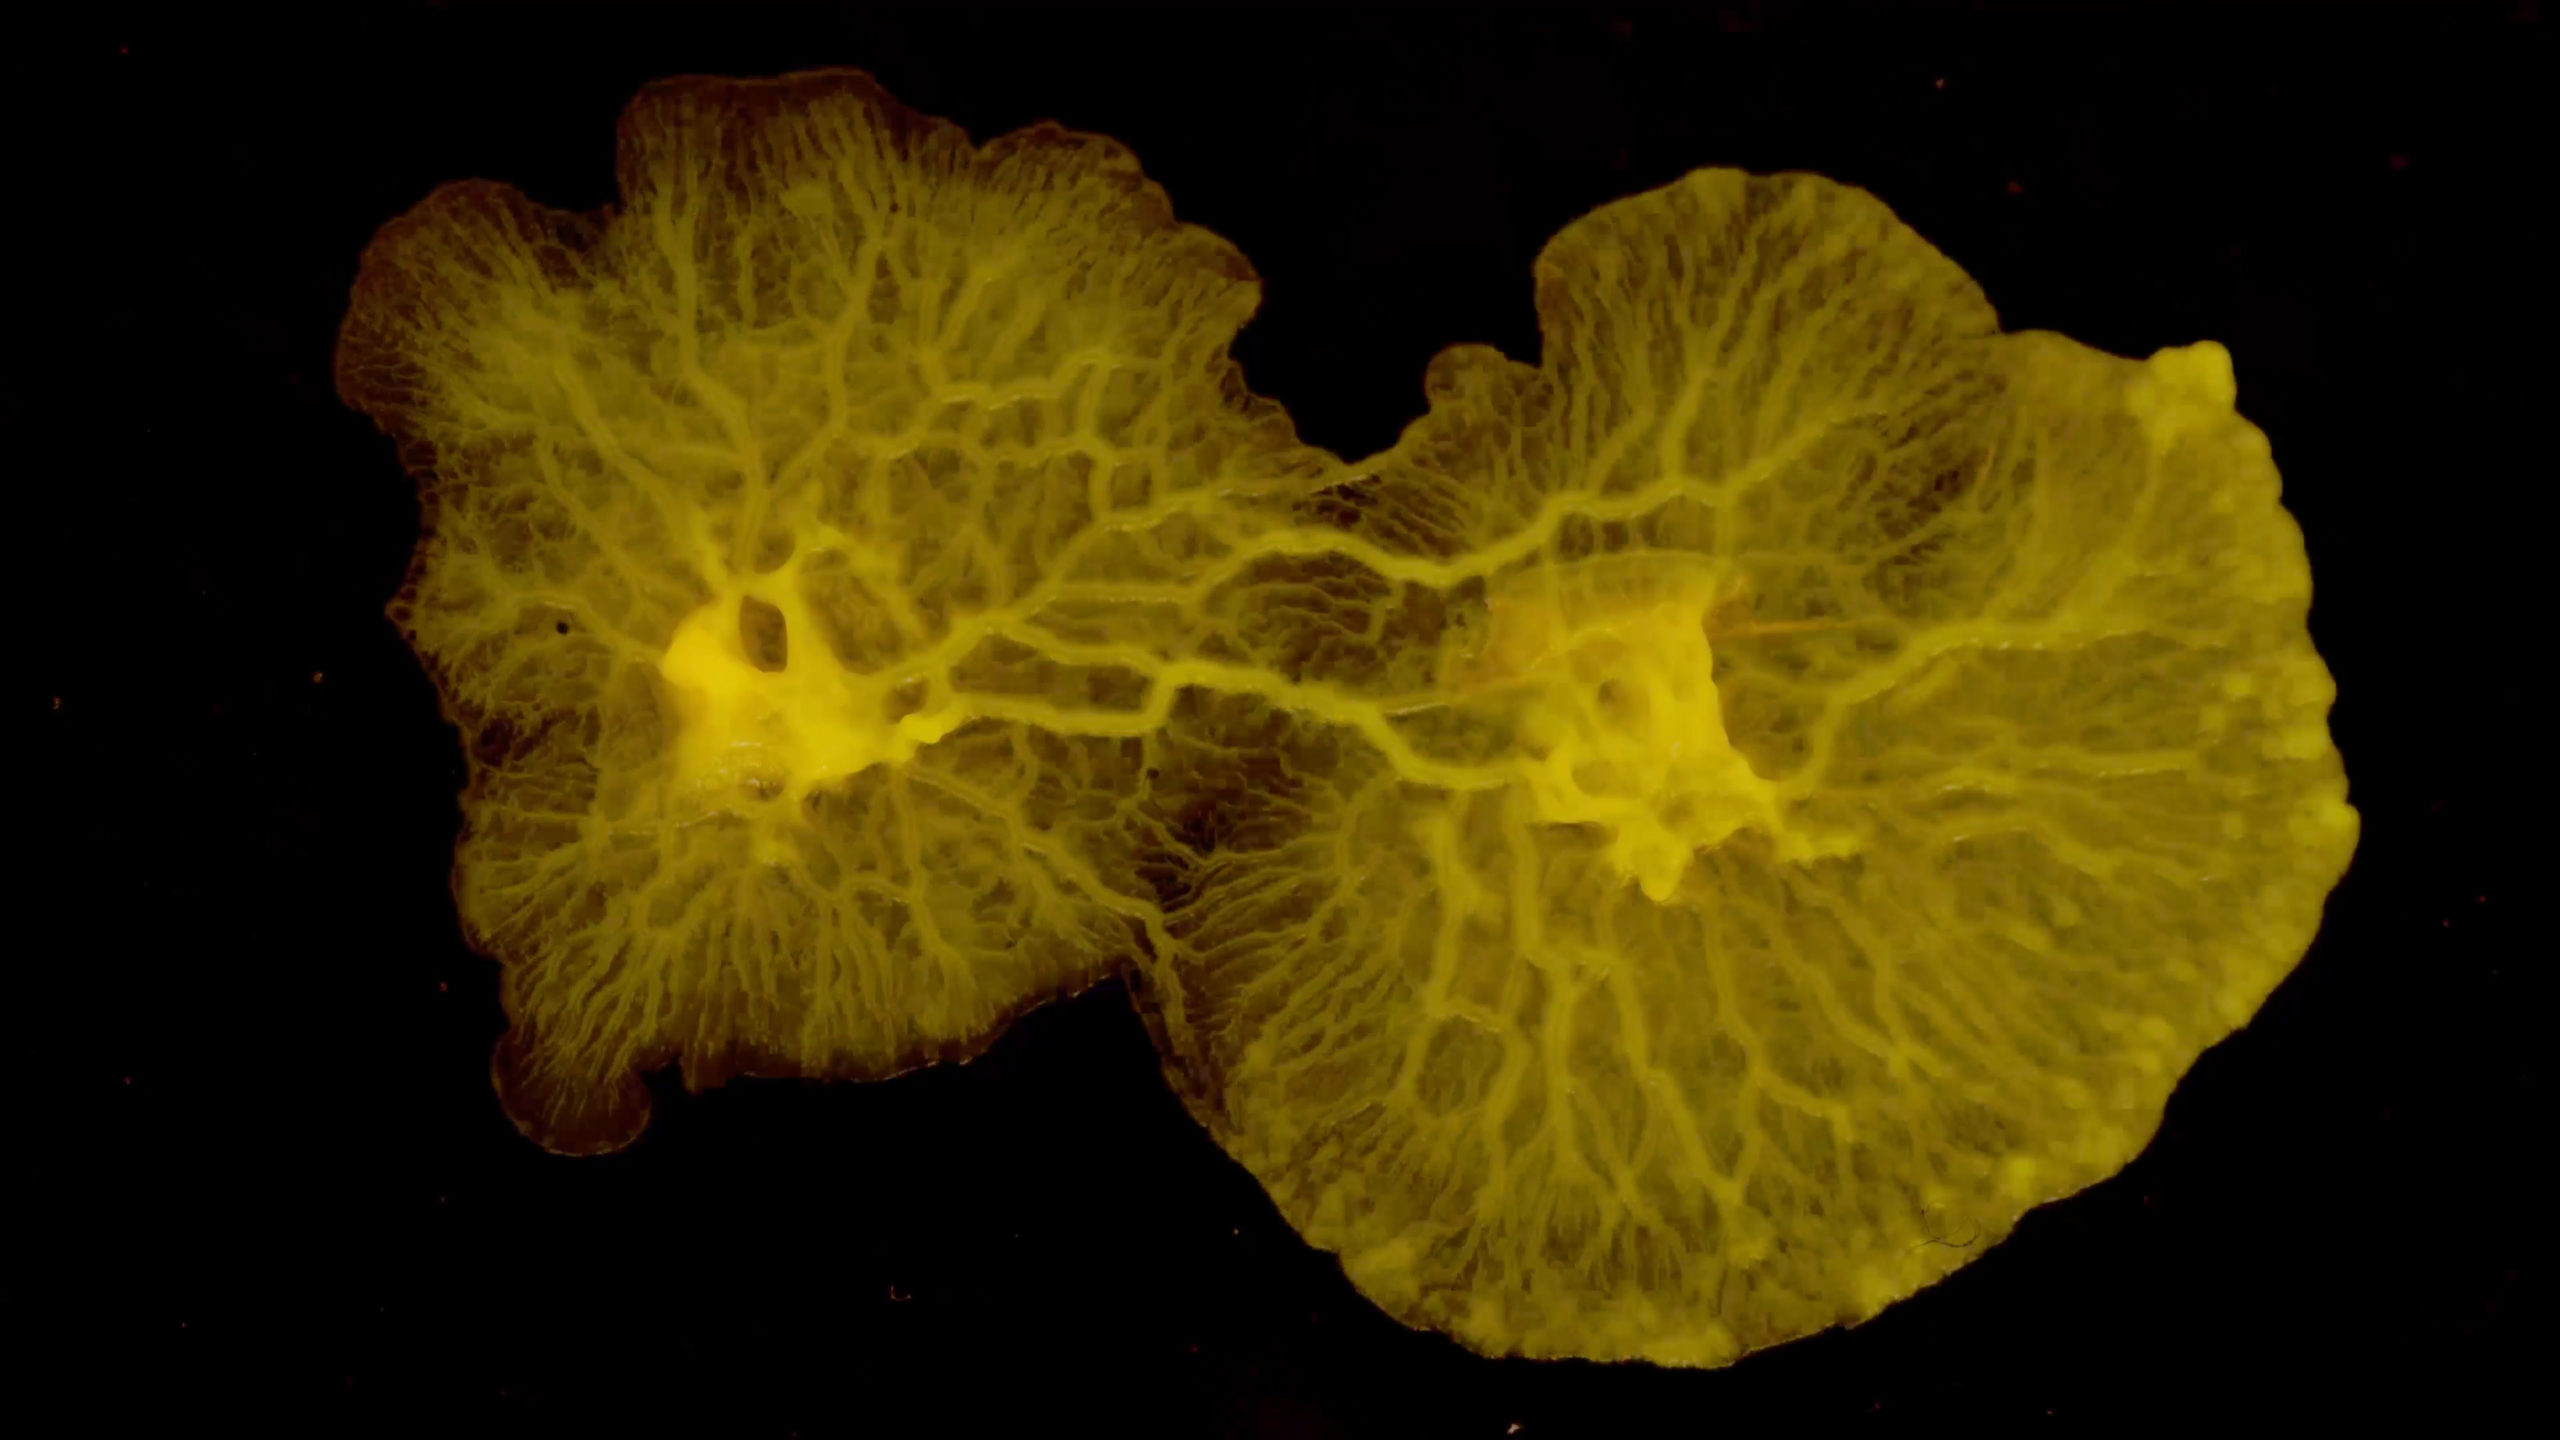 a close up of growing yellow slime molds